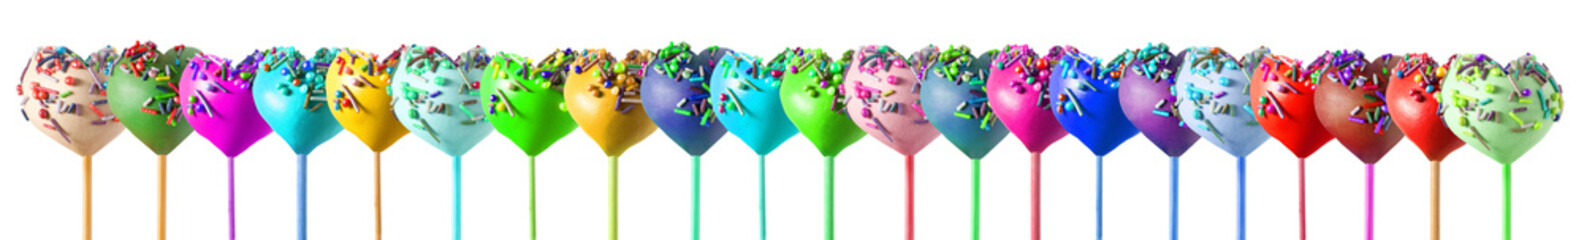 Isolated image of a candy close up